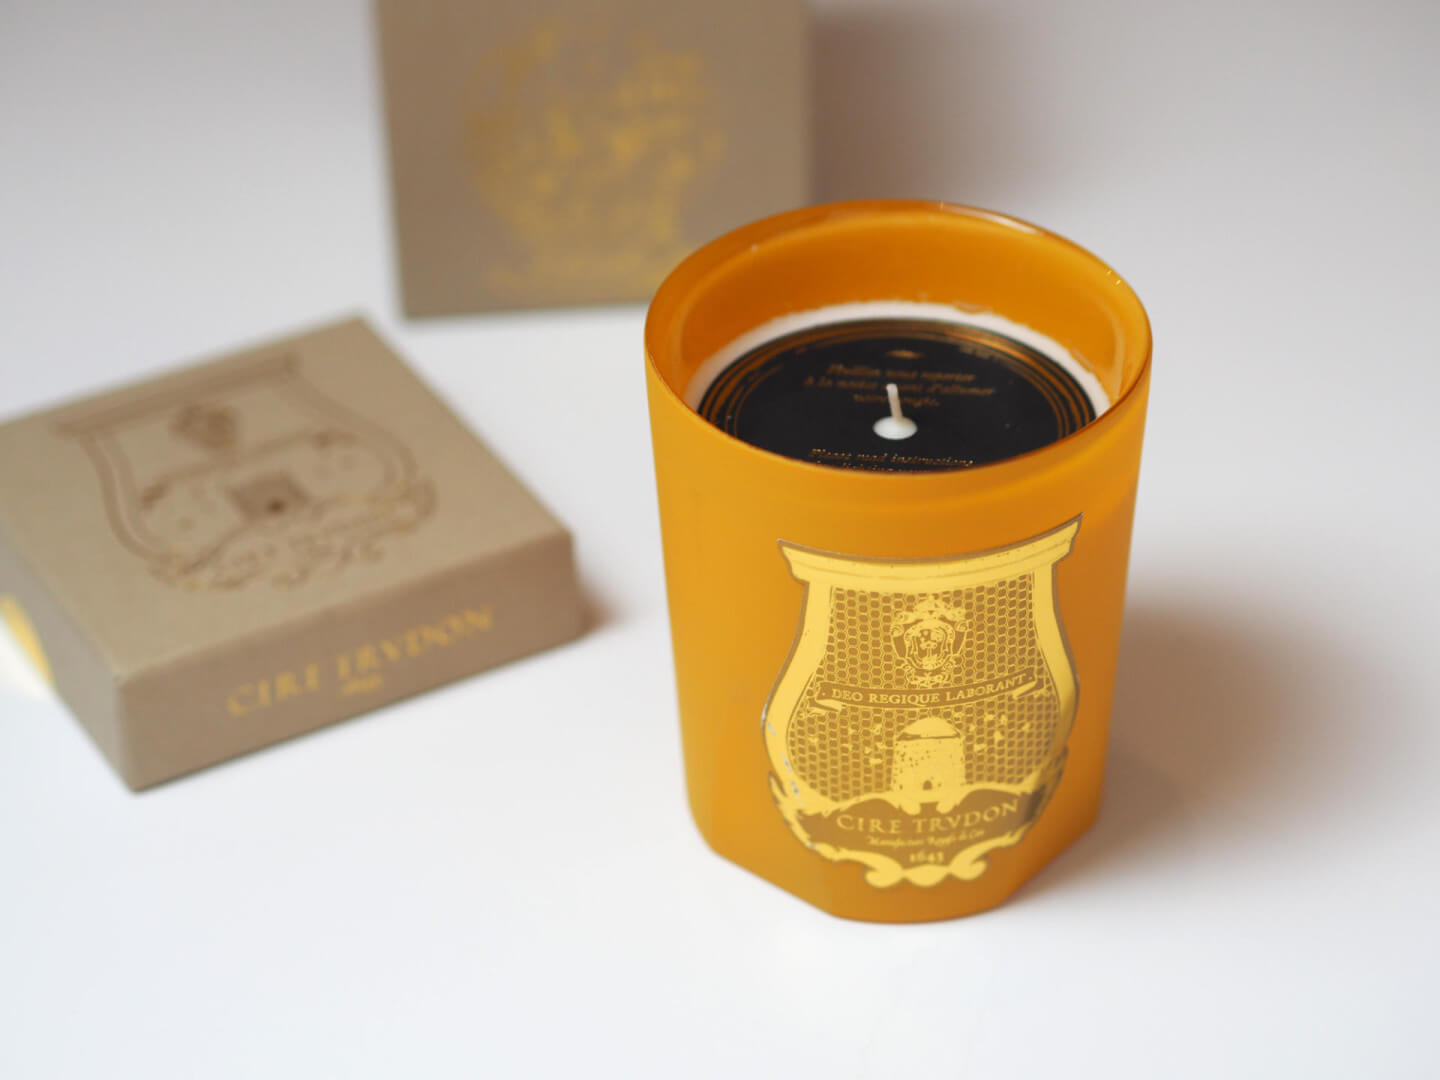 Cire Trudon Cyrnos Luxury Candle